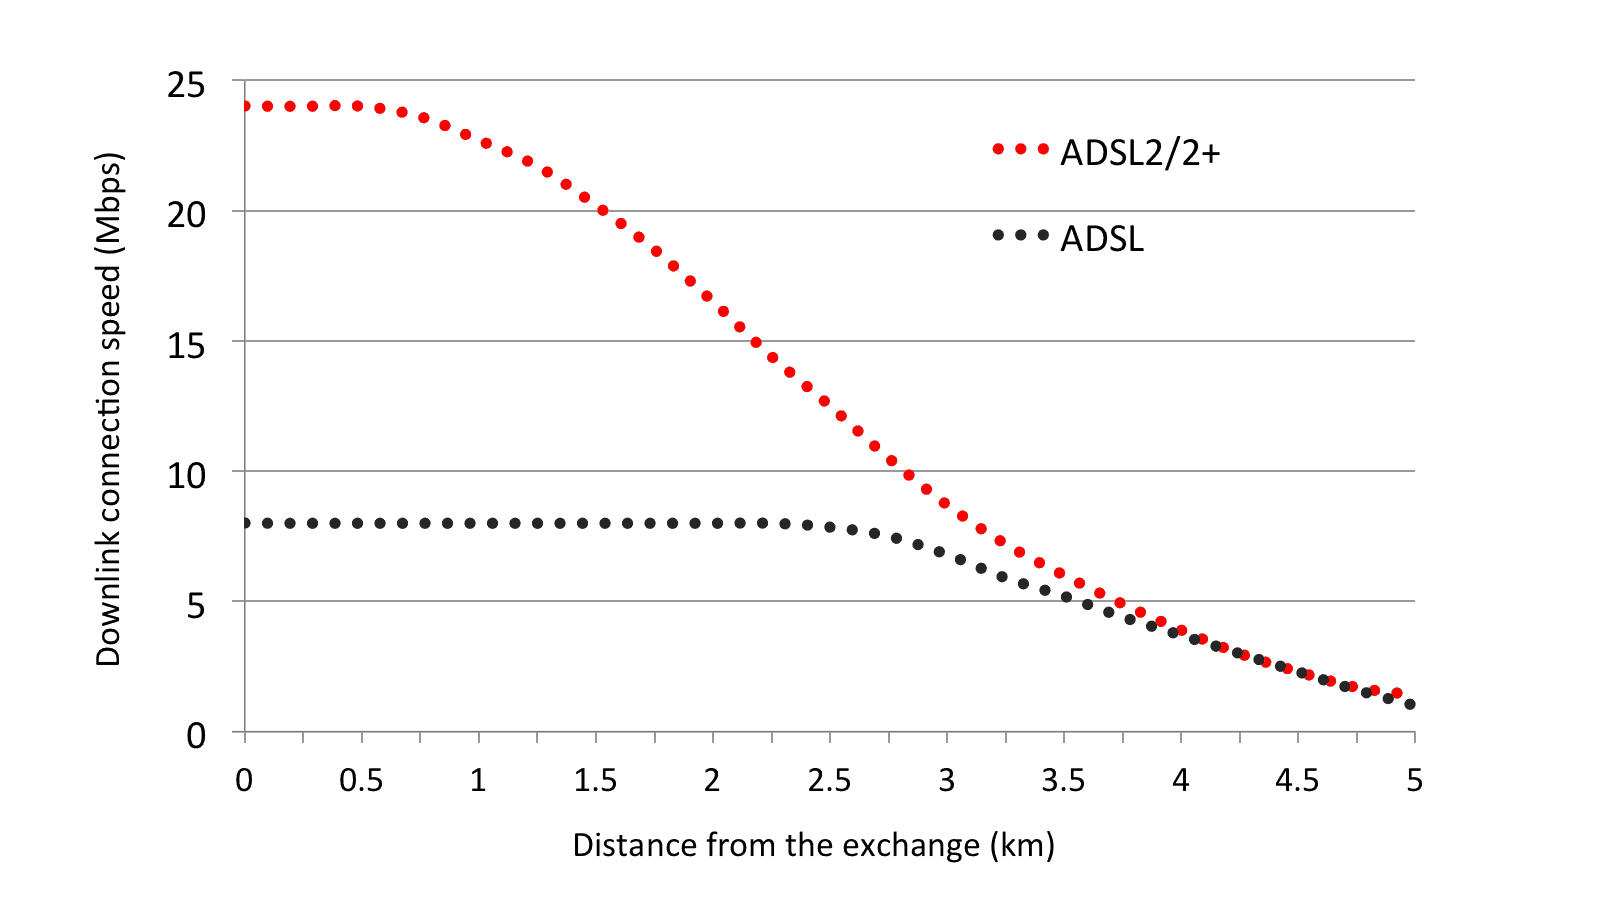 Chart of ADSL and ADSL2+ Speed Versus Distance | Increase